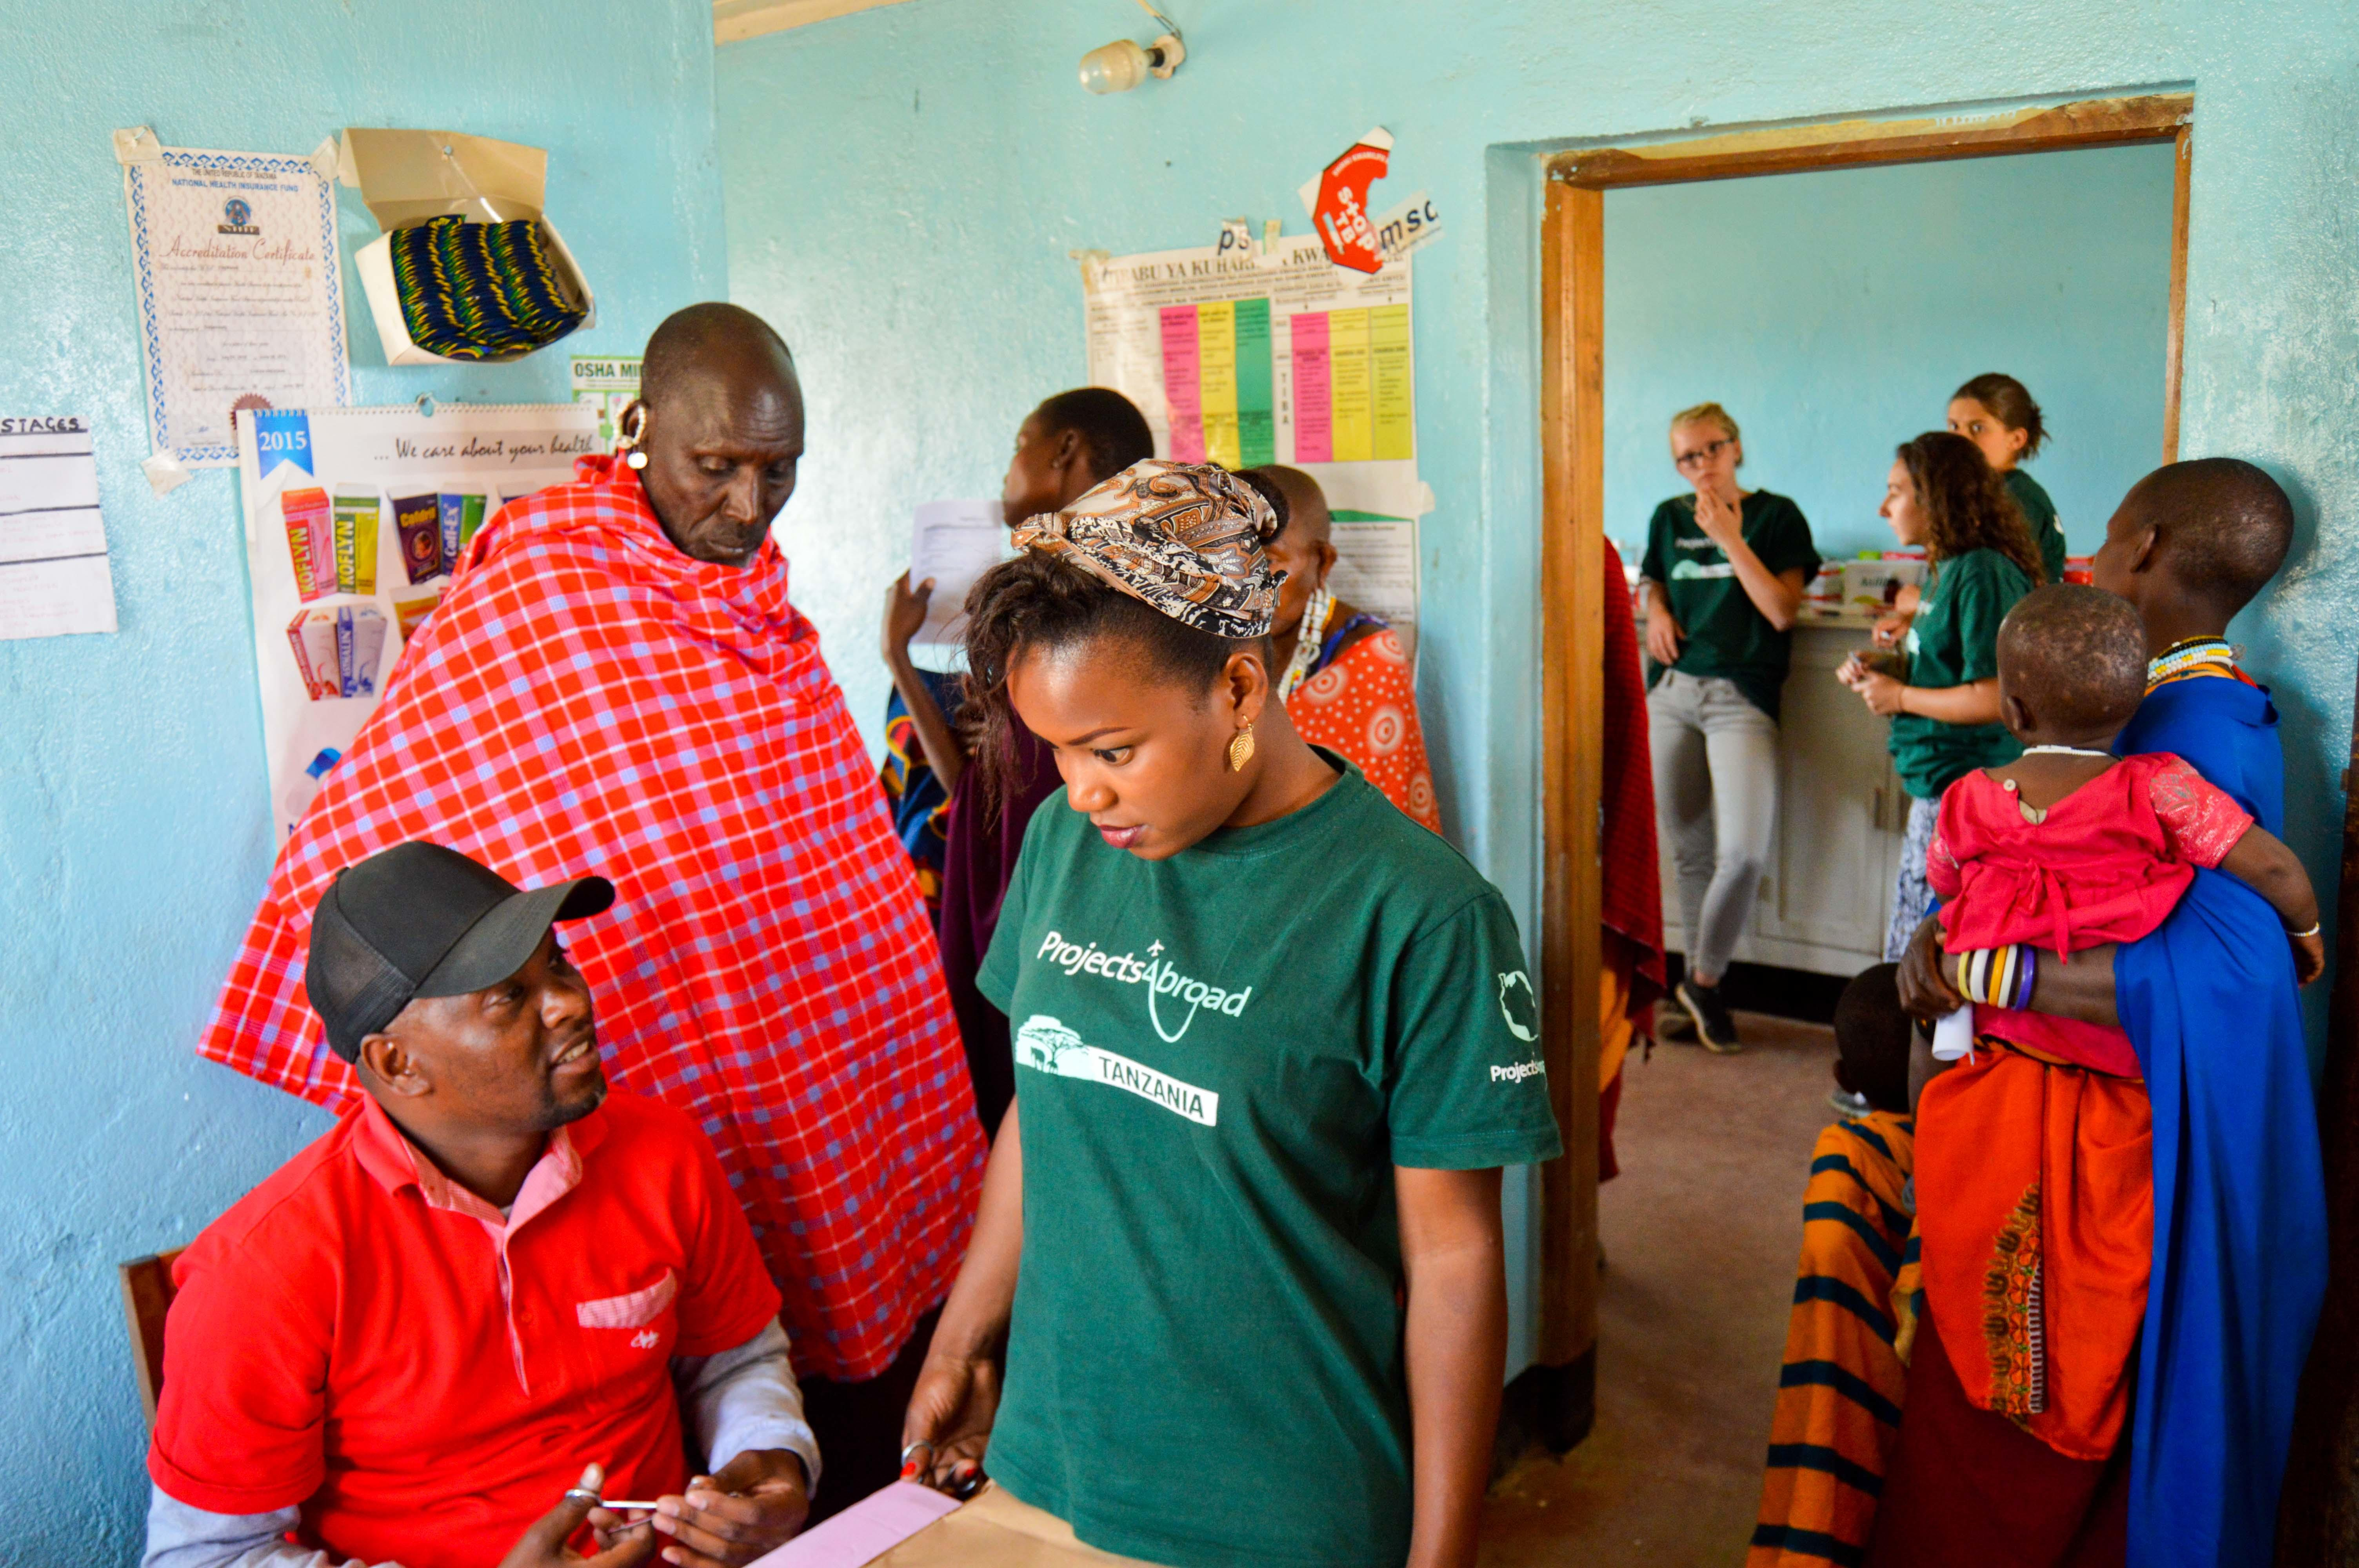 Two Projects Abroad interns on a nursing internship in Tanzania have a quick chat at a medical outreach.